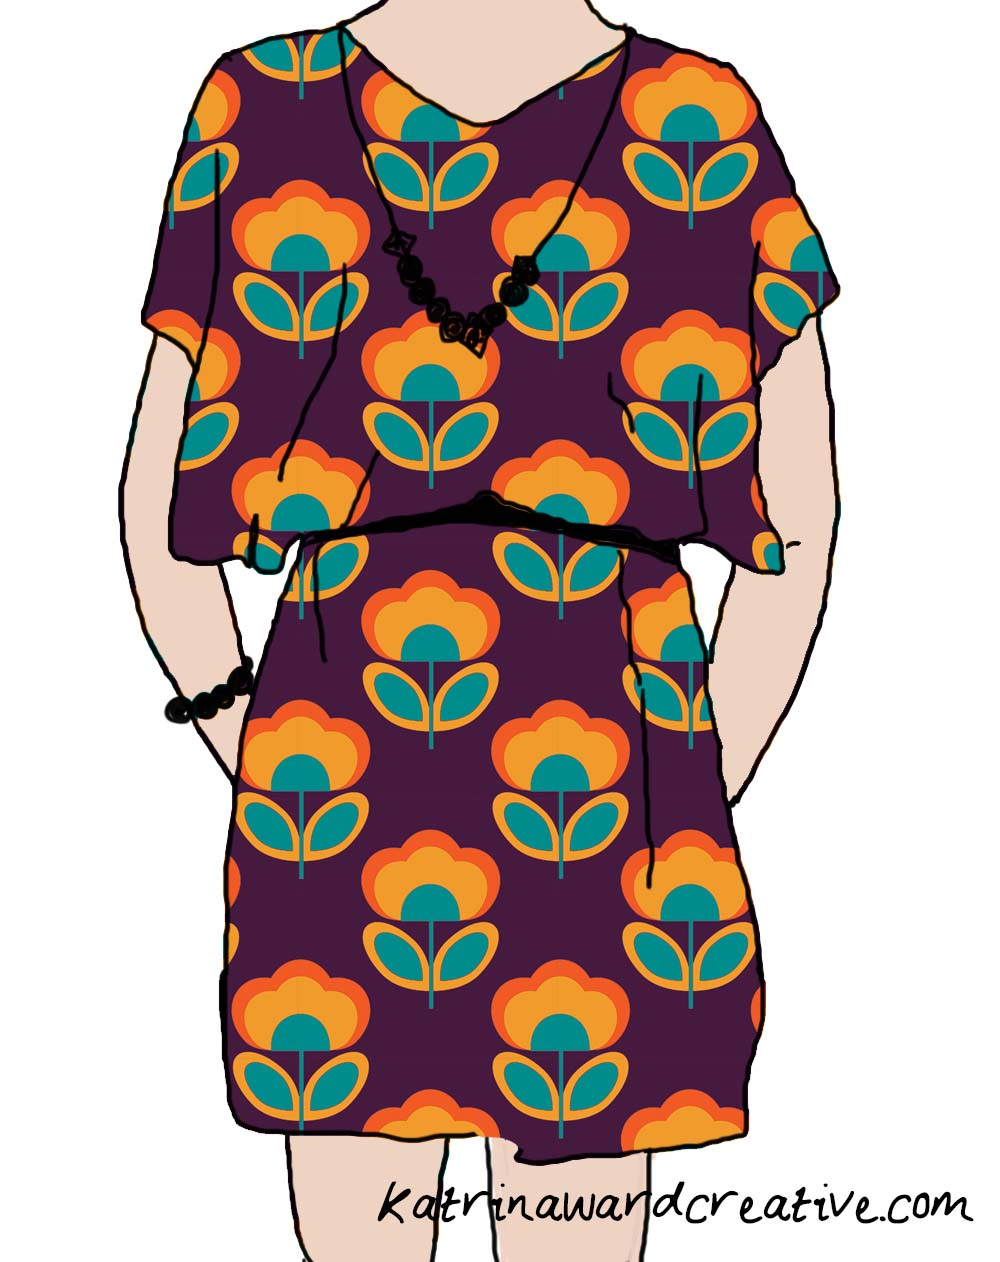 retro flowers knocker frock.jpg